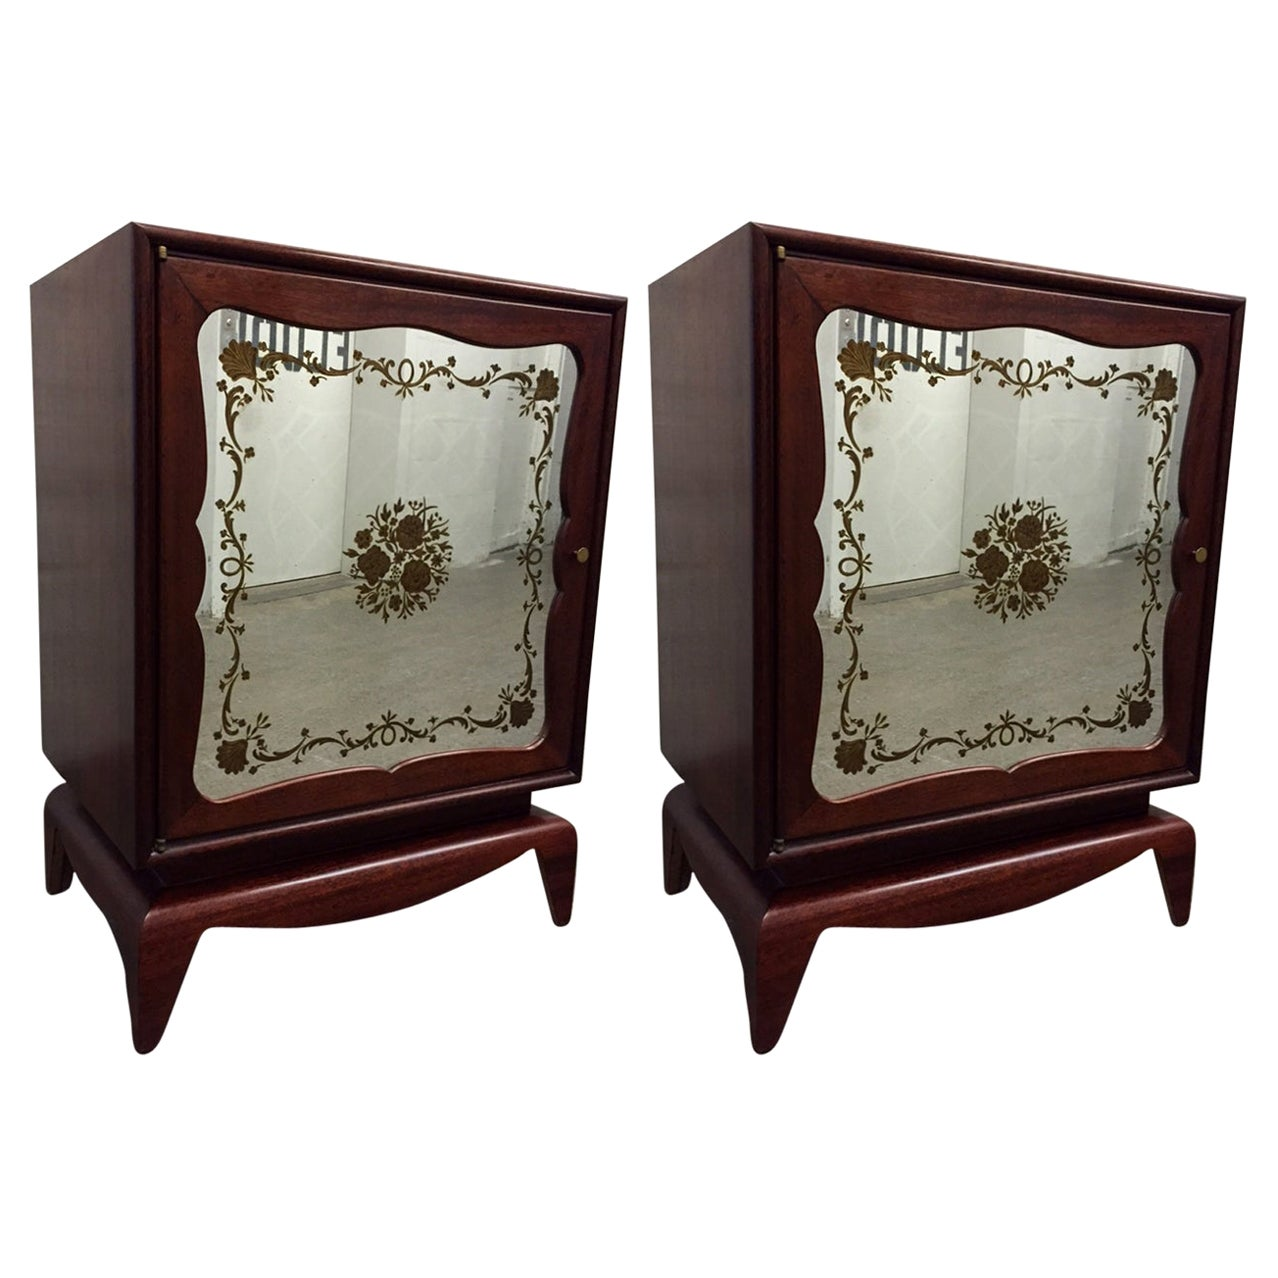 Pair of Mahogany Grosfeld House Cabinets with Etched Mirrored Panels